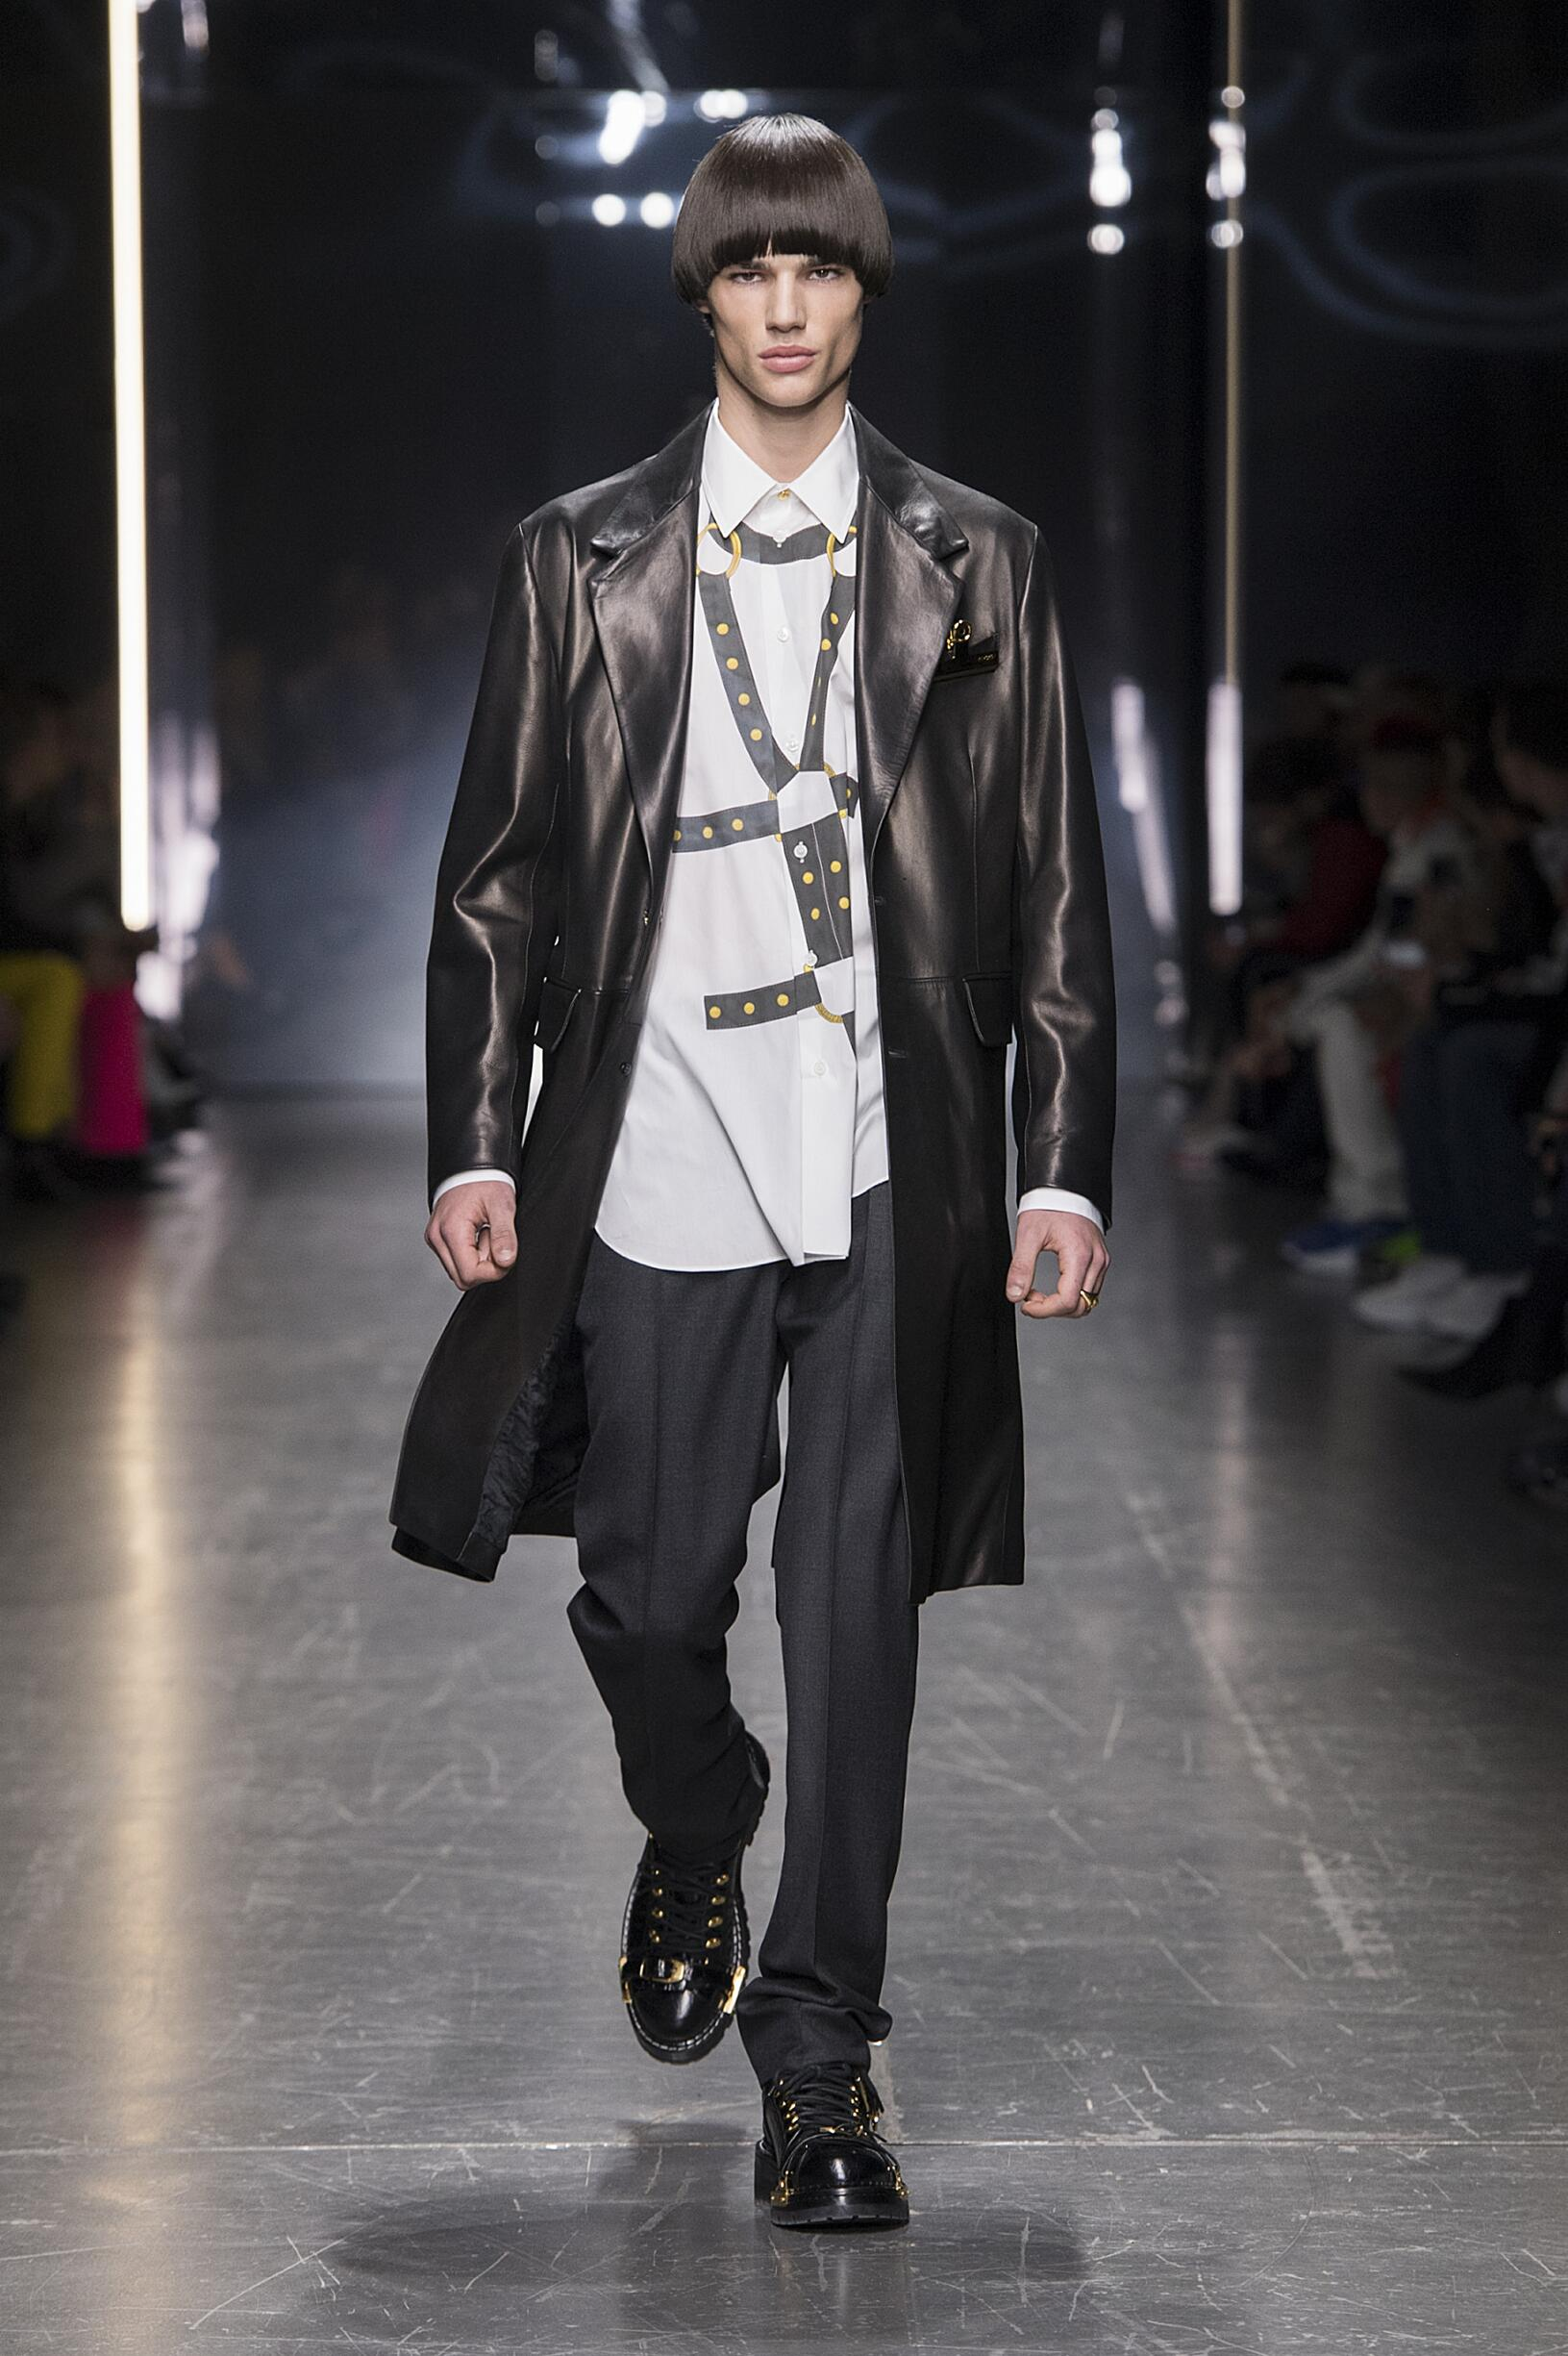 d035692149c VERSACE FALL WINTER 2019 MEN S COLLECTION – MILAN FASHION WEEK